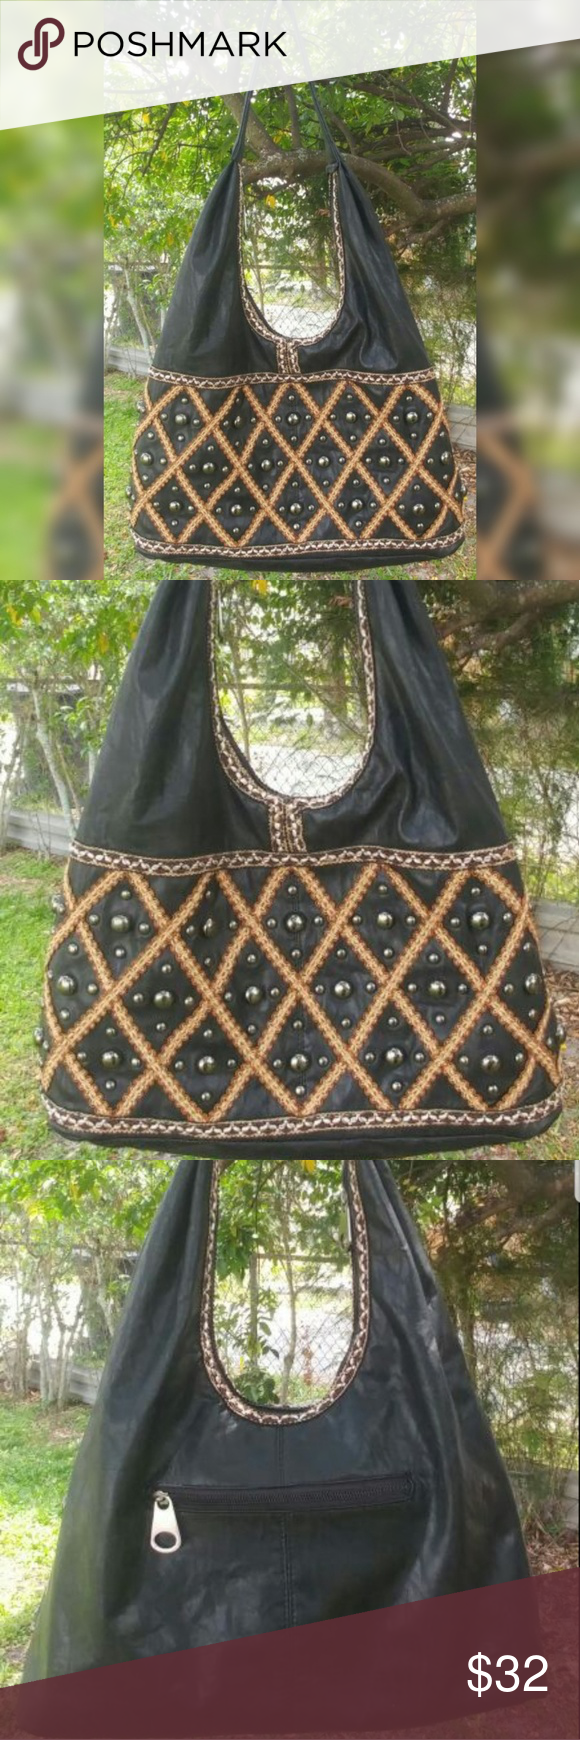 Mms Design Studio Purse Satchel Hobo Bag Black With Brown Beige Trim Pictures Show Front And Back